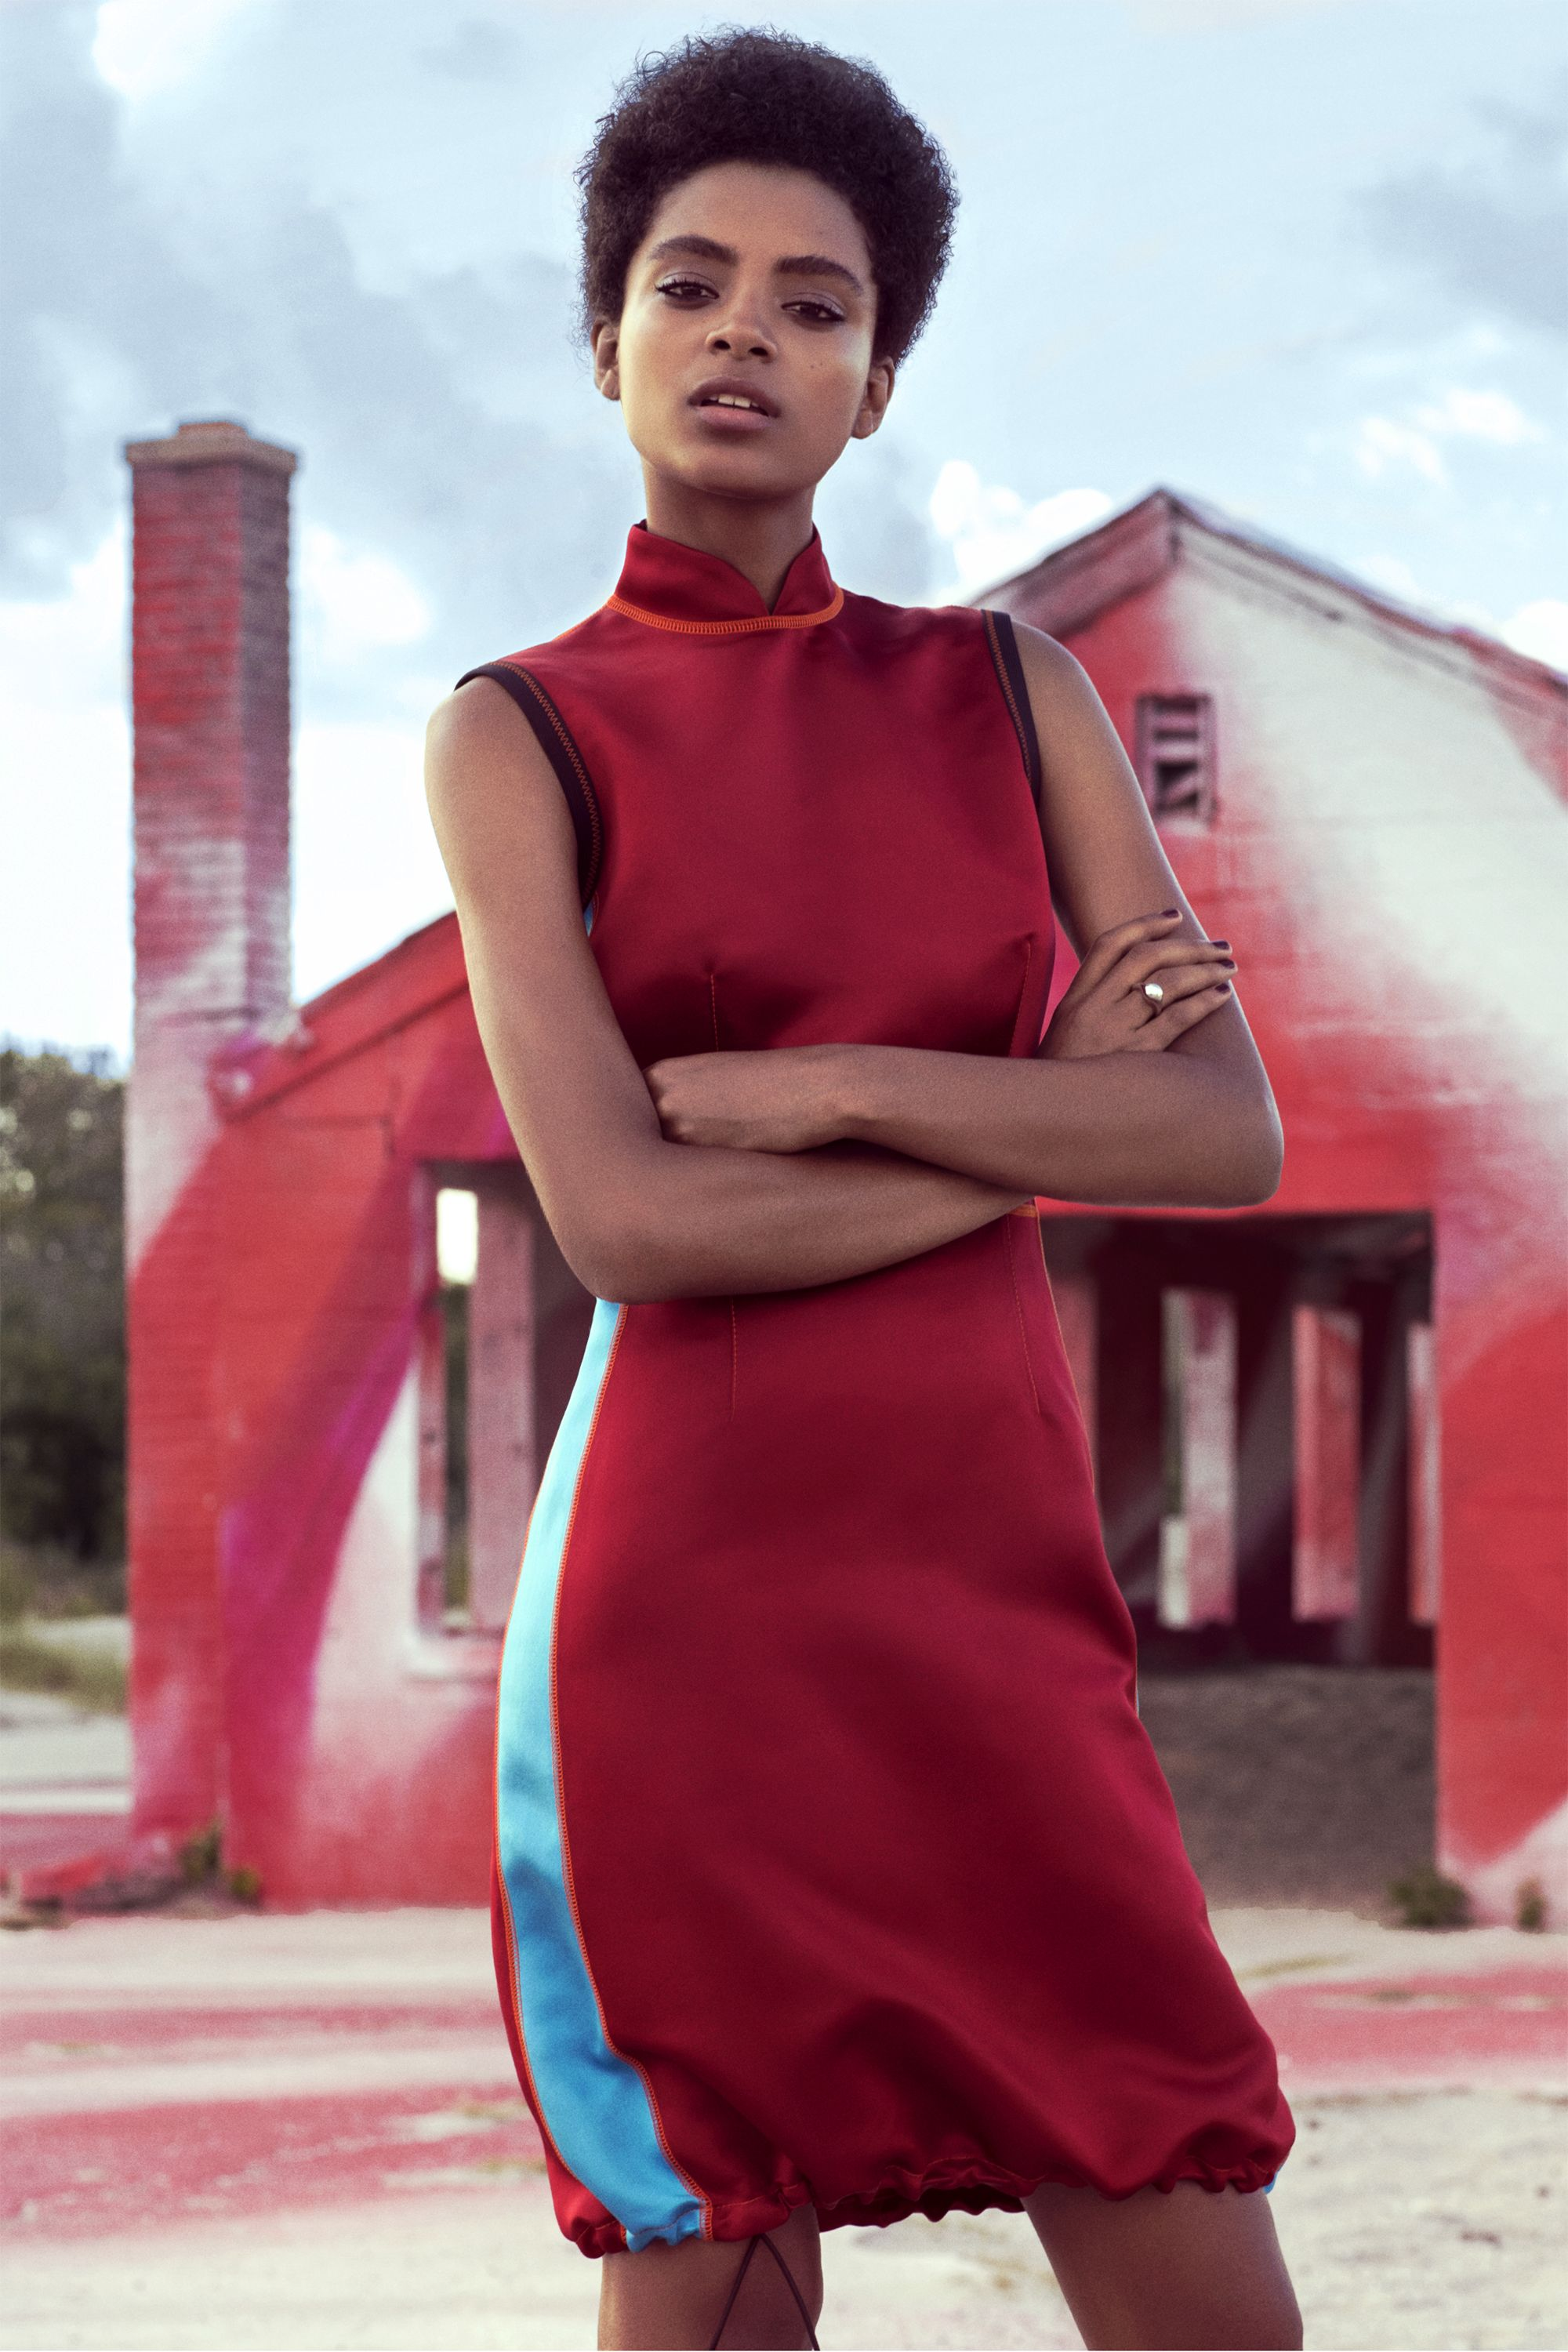 """<p><strong data-redactor-tag=""""strong"""" data-verified=""""redactor"""">Prada</strong> dress, $2,200, <a href=""""http://prada.com"""" target=""""_blank"""" data-tracking-id=""""recirc-text-link"""">prada.com</a>;<strong data-redactor-tag=""""strong"""">Jennifer Fisher</strong>ring, $245,<a href=""""http://shopbazaar.com/"""" target=""""_blank"""" data-tracking-id=""""recirc-text-link"""">shopBAZAAR.com</a>.<span class=""""redactor-invisible-space"""" data-verified=""""redactor"""" data-redactor-tag=""""span"""" data-redactor-class=""""redactor-invisible-space""""></span></p>"""